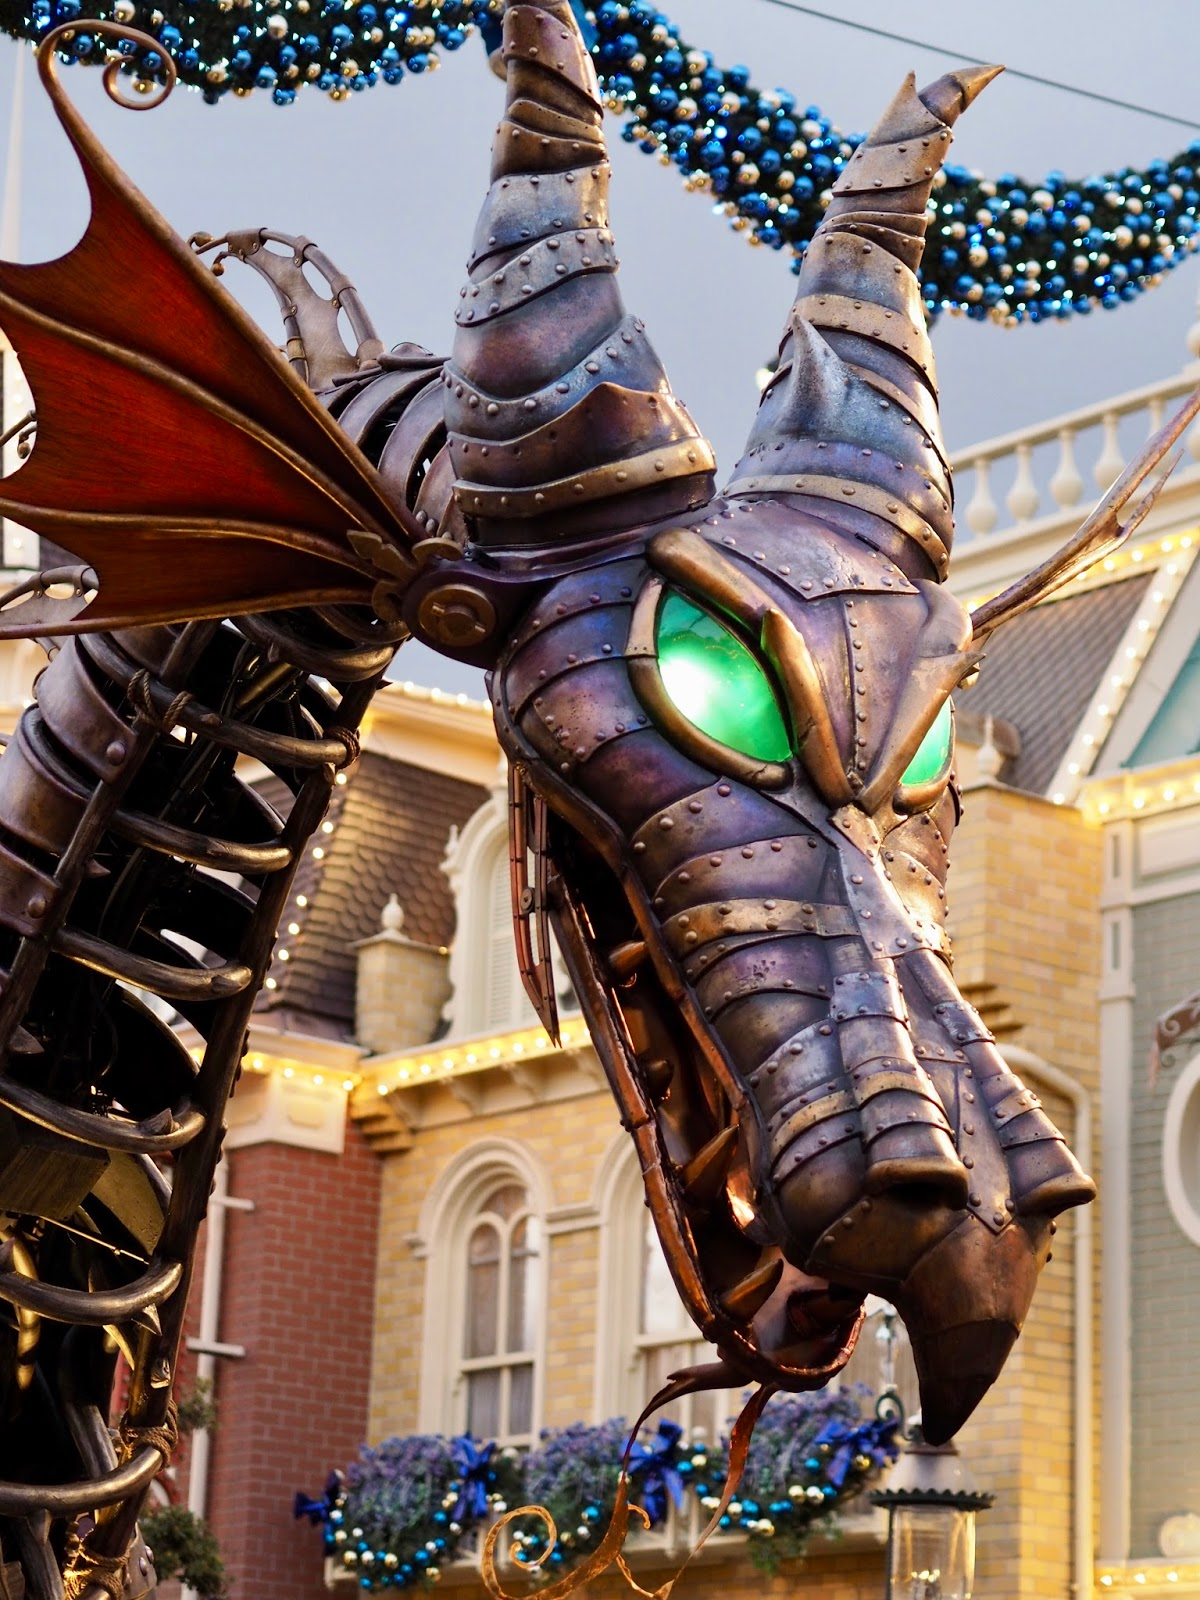 Disneyland Paris dragon